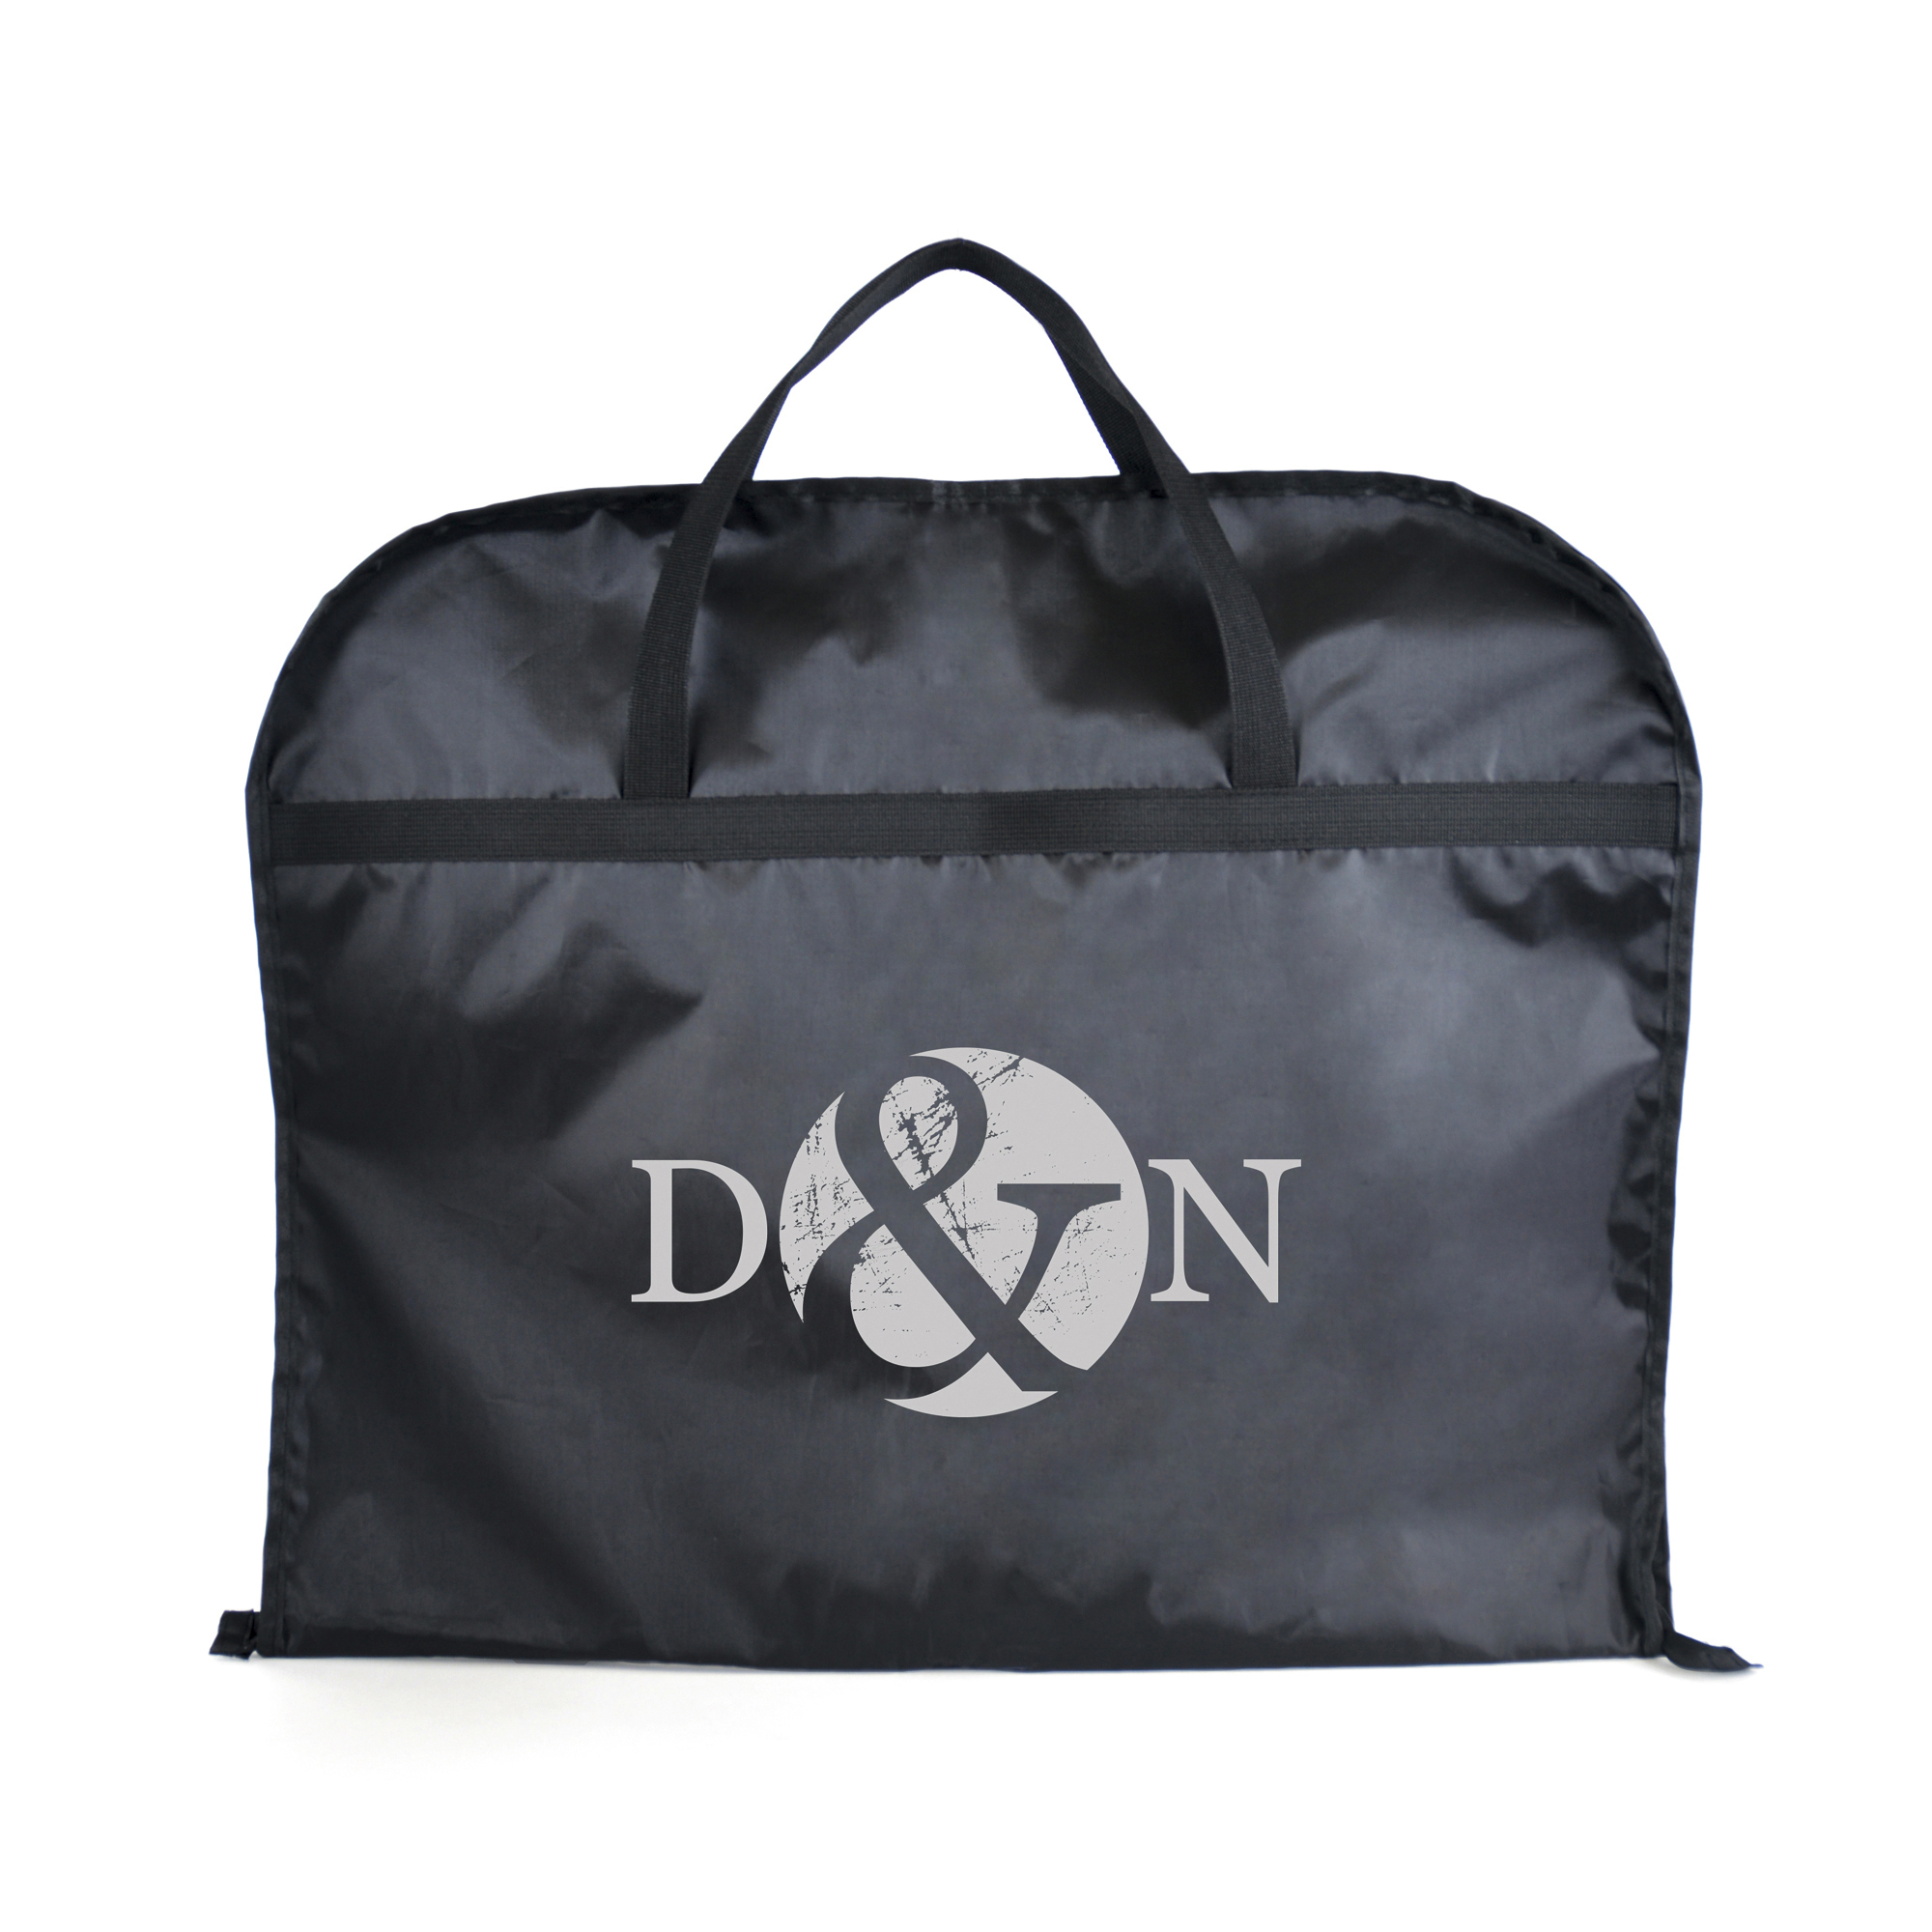 Luggage & Suit Bags